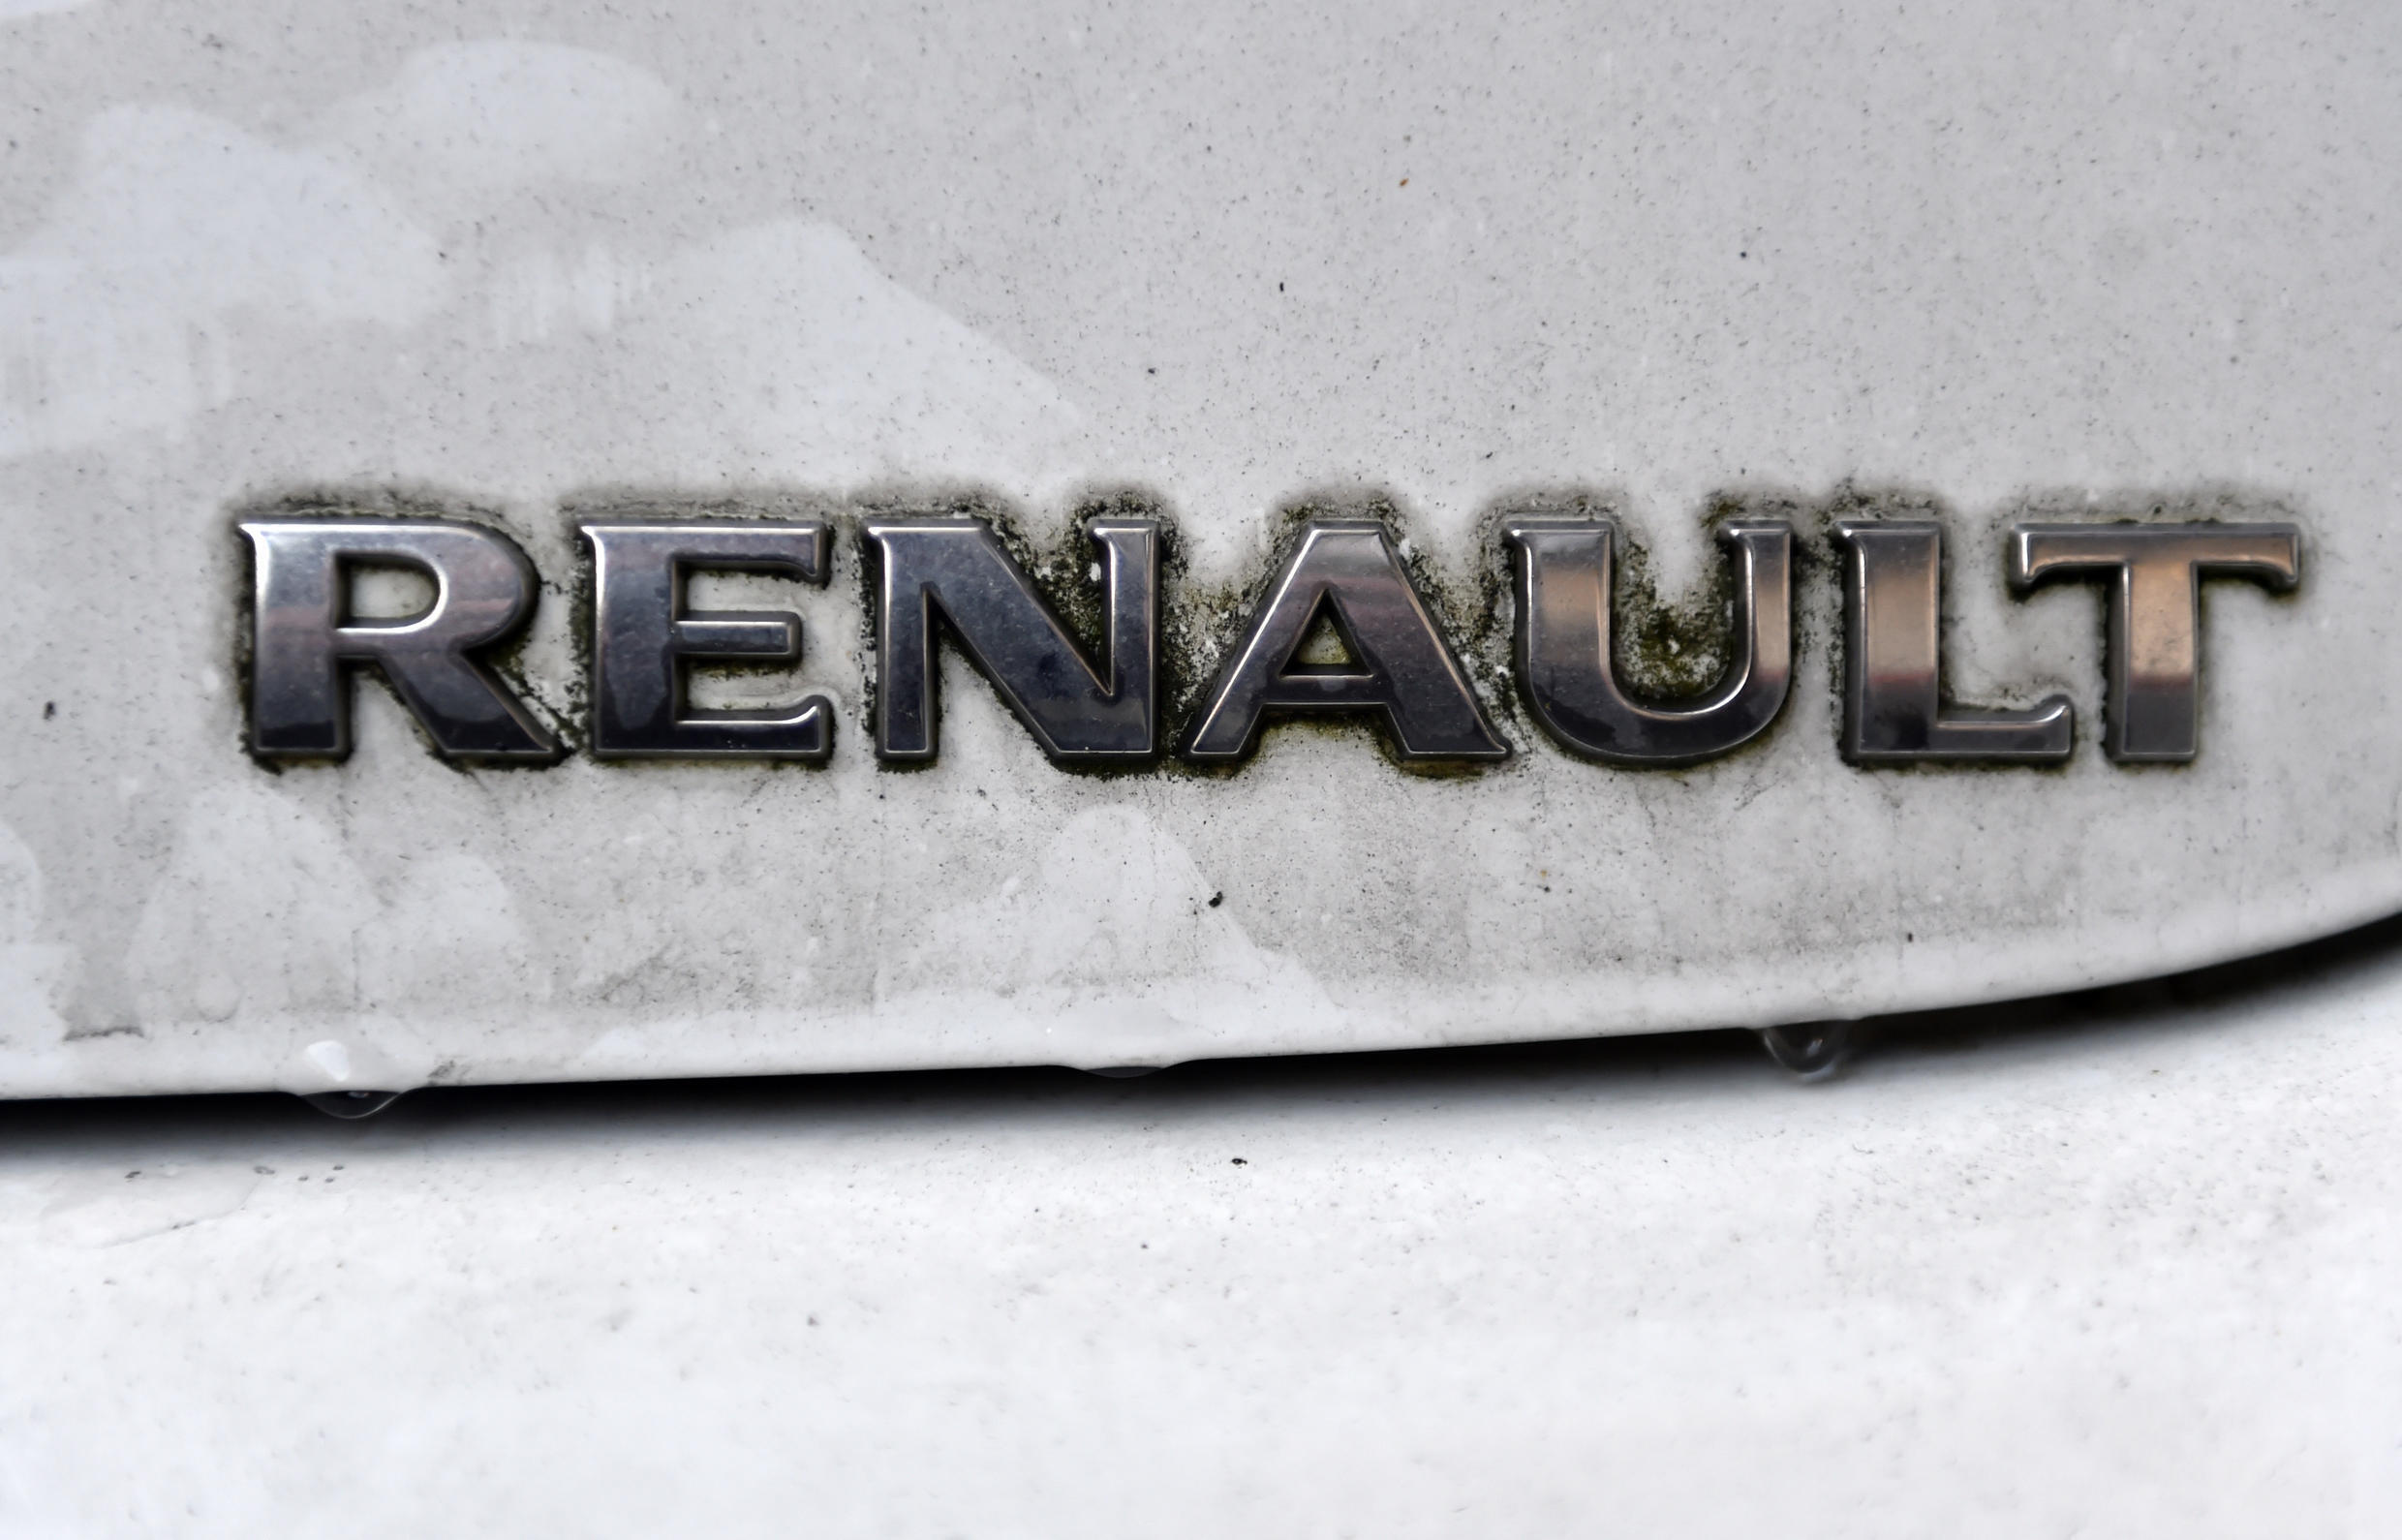 According to a fraud squad report seen by AFP, investigators found discrepancies of up to 377 percent between emissions from Renault vehicles during tests, and results from actual on-the-road use by consumers